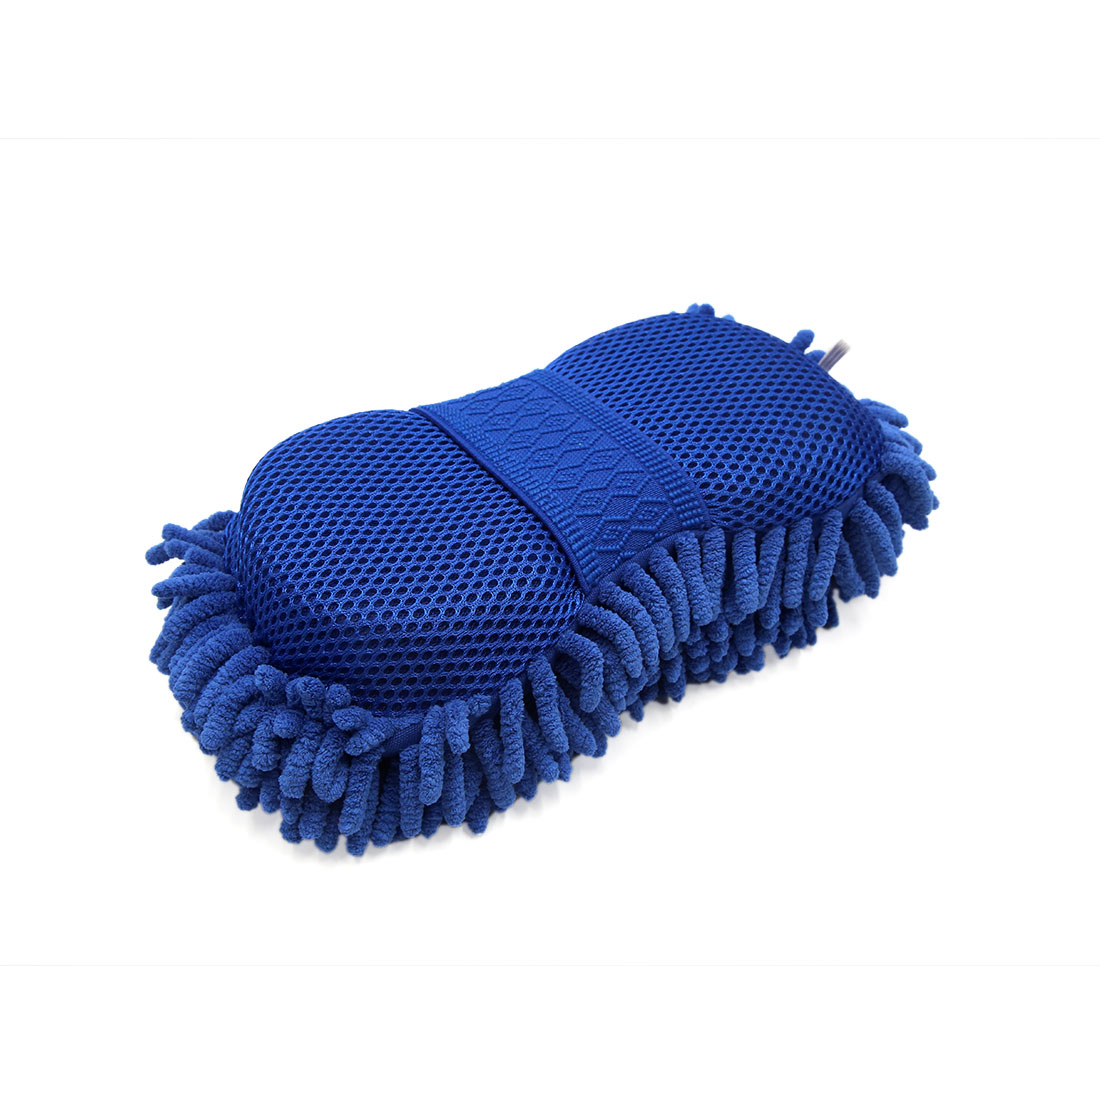 25 x 13 x 6.5cm Blue Microfiber Chenille Washing Cleaning Sponge for Auto Car